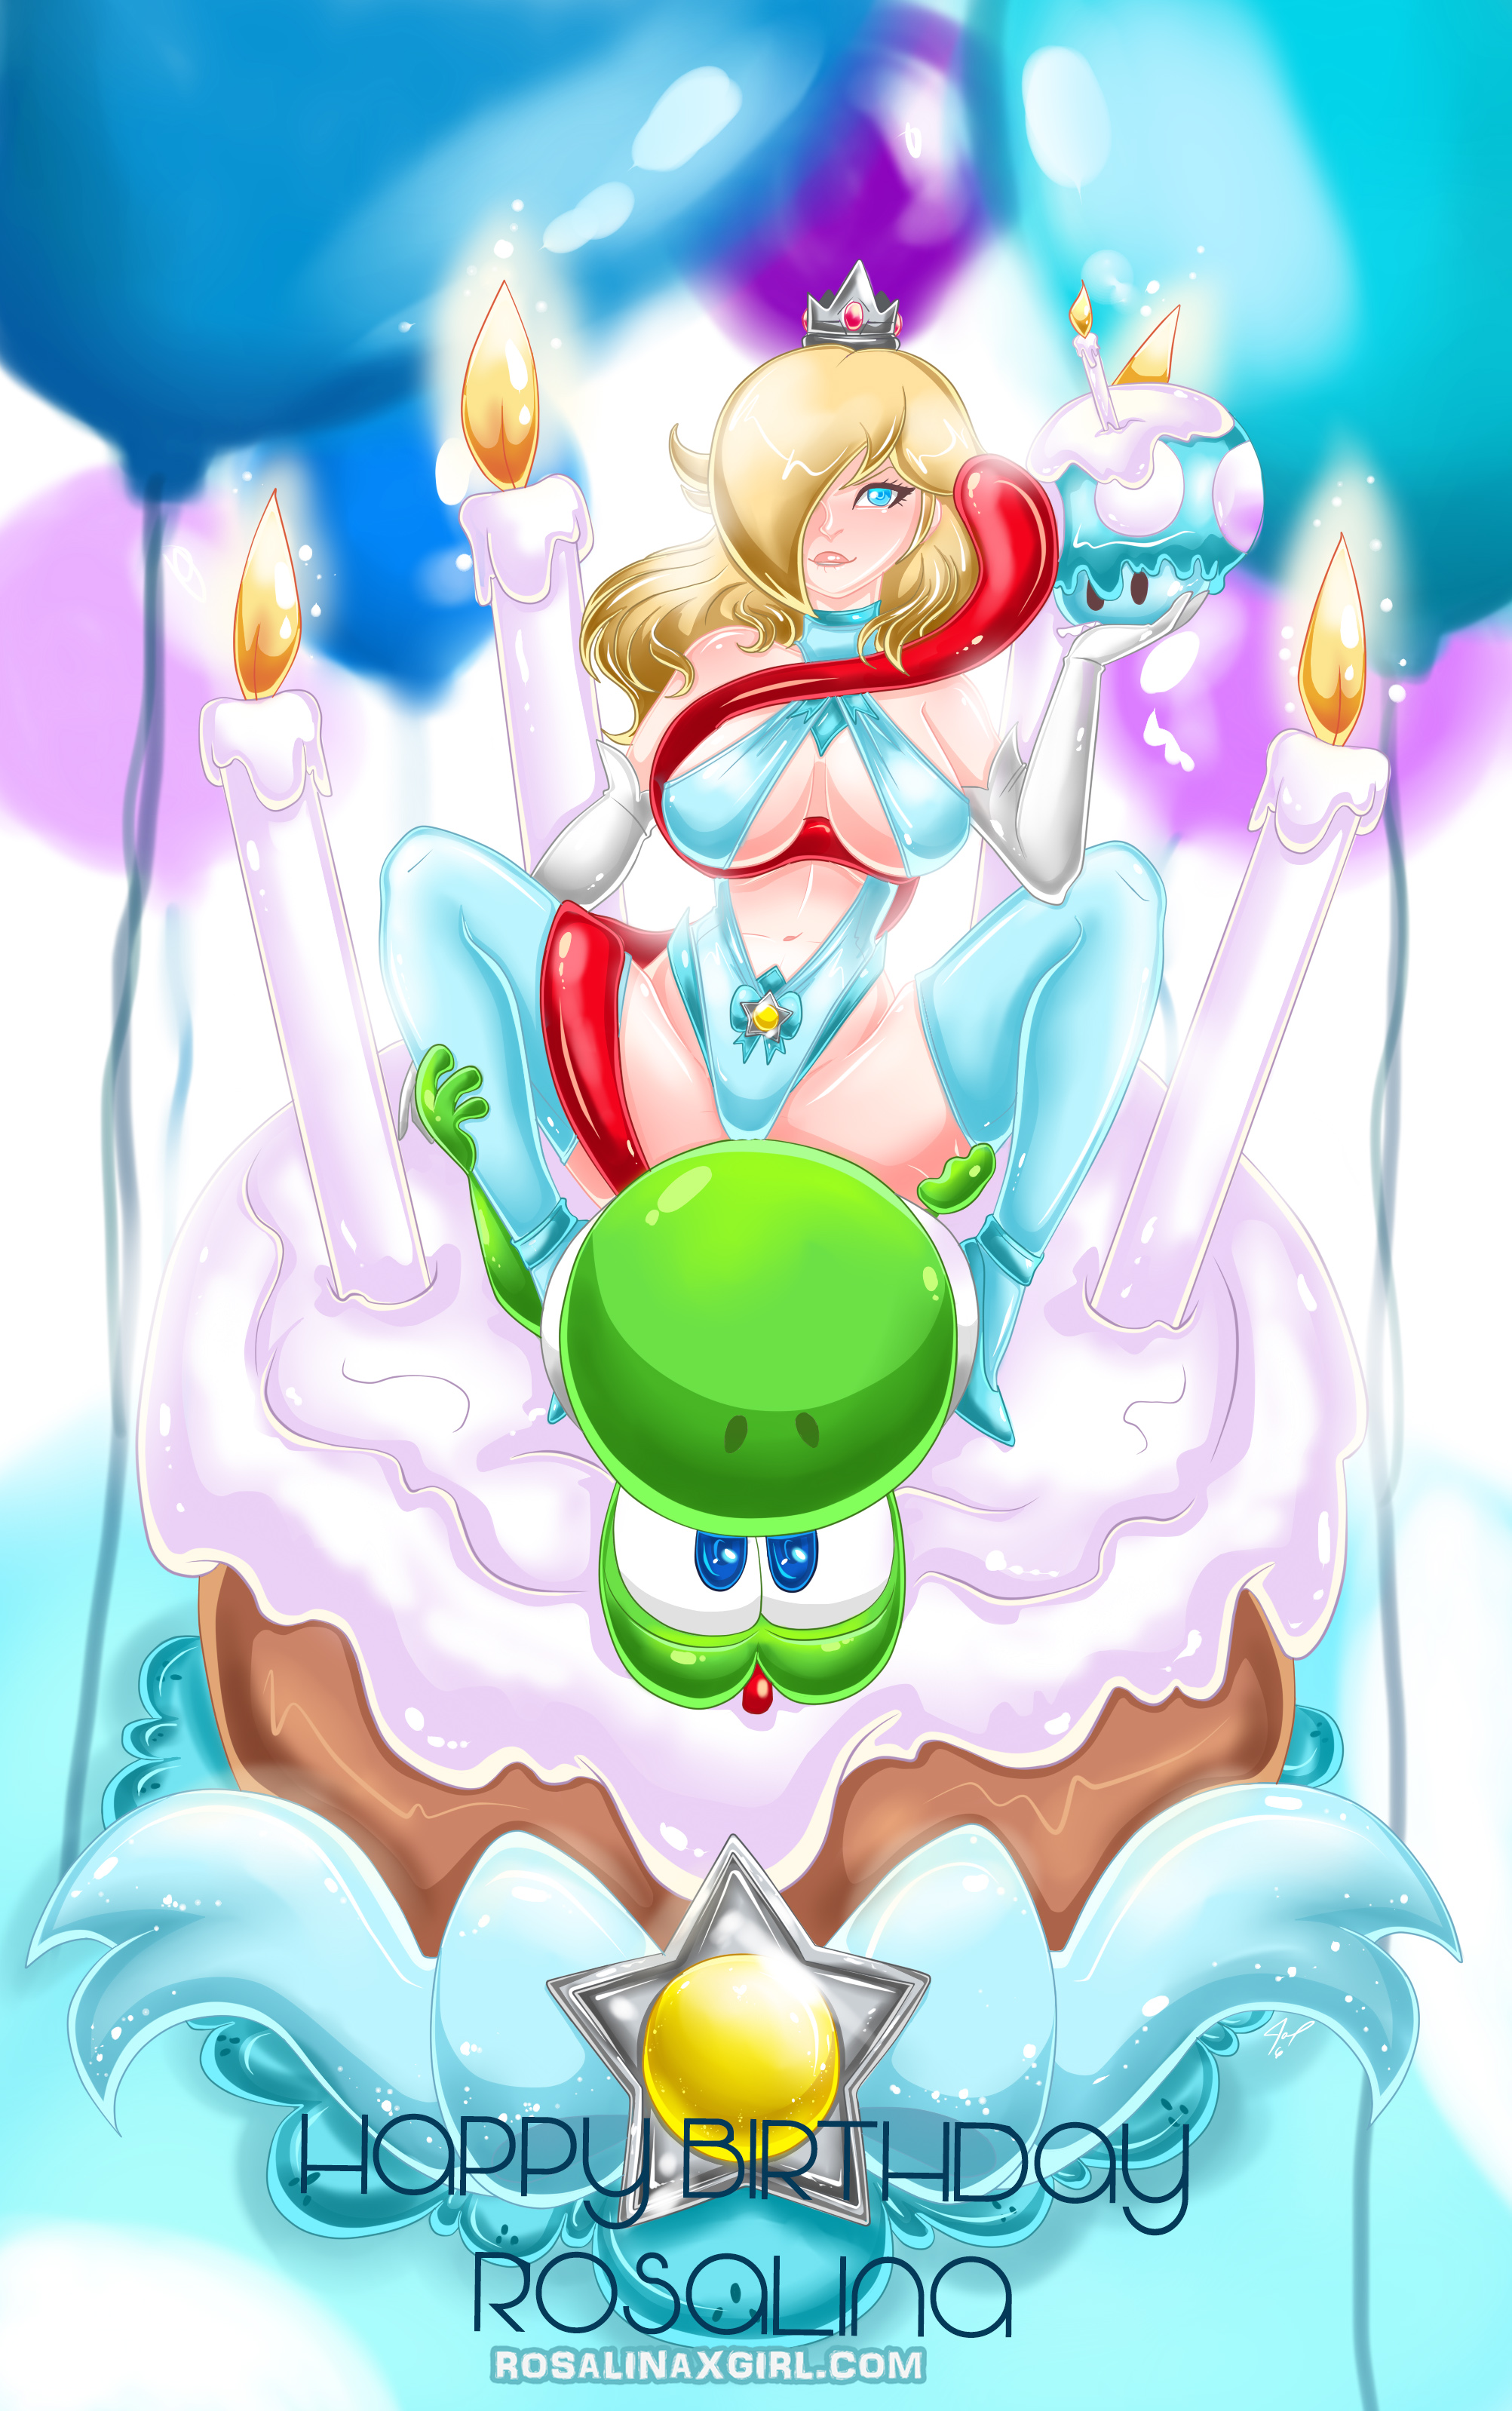 princess Rosalina Nintendo yoshi sexy tentacle tongue birthday